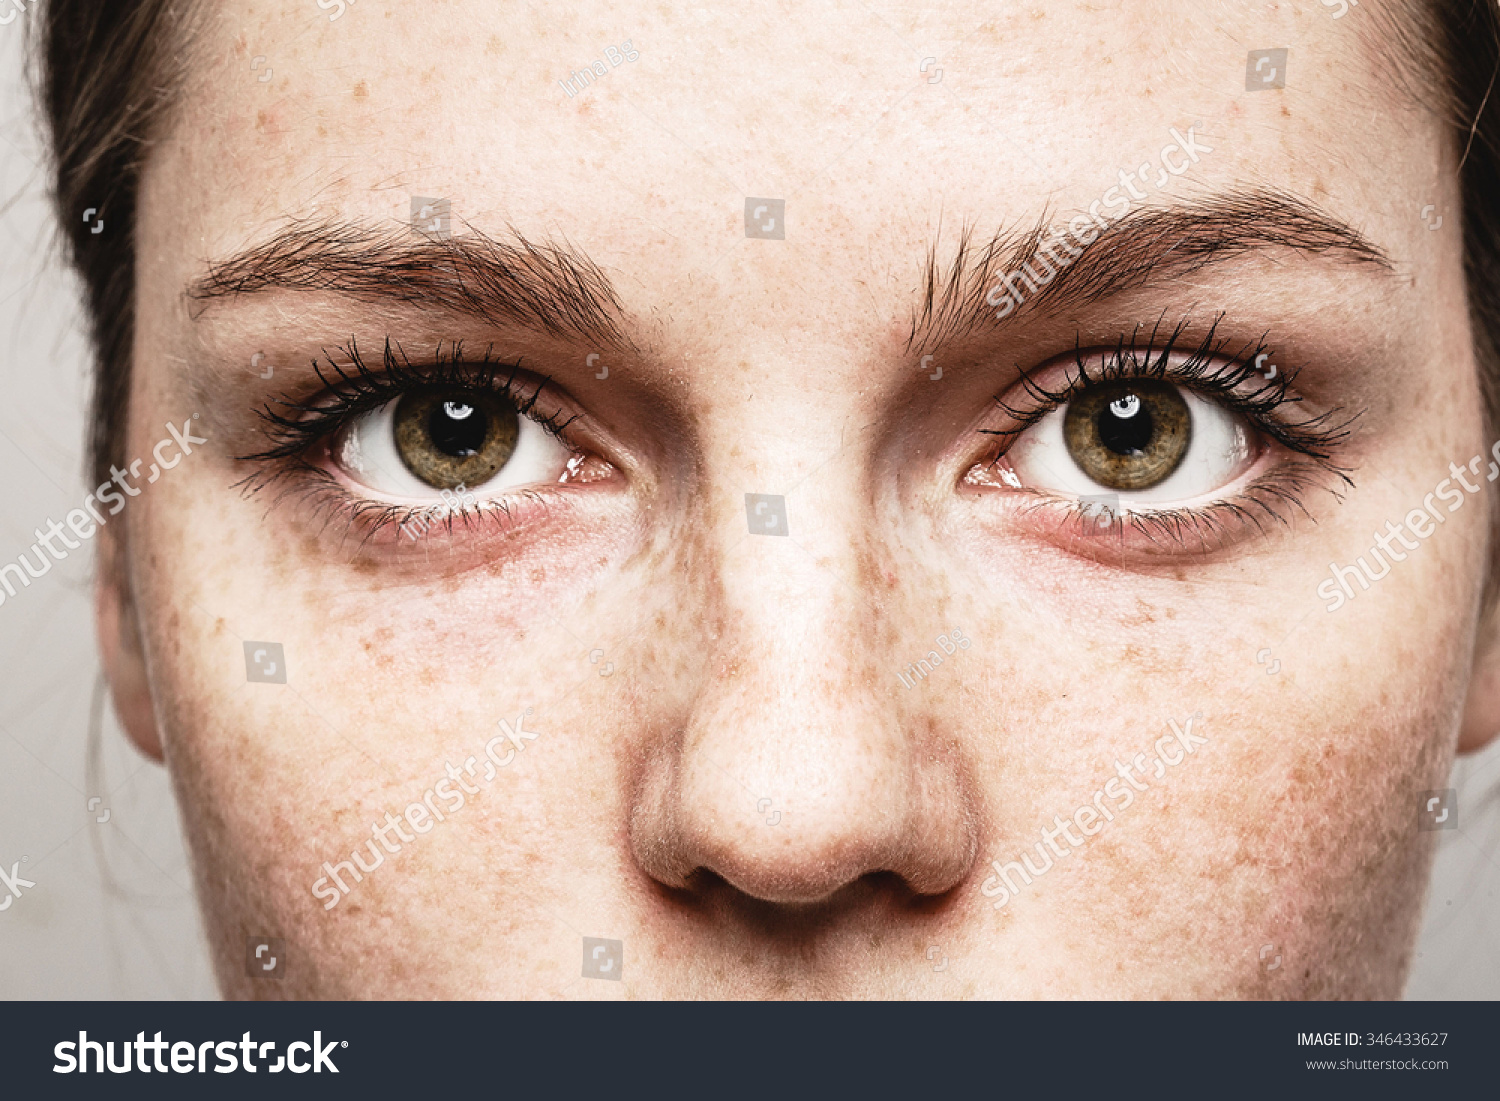 Eyes woman Young beautiful freckles woman face portrait with healthy skin #346433627 - 123PhotoFree.com